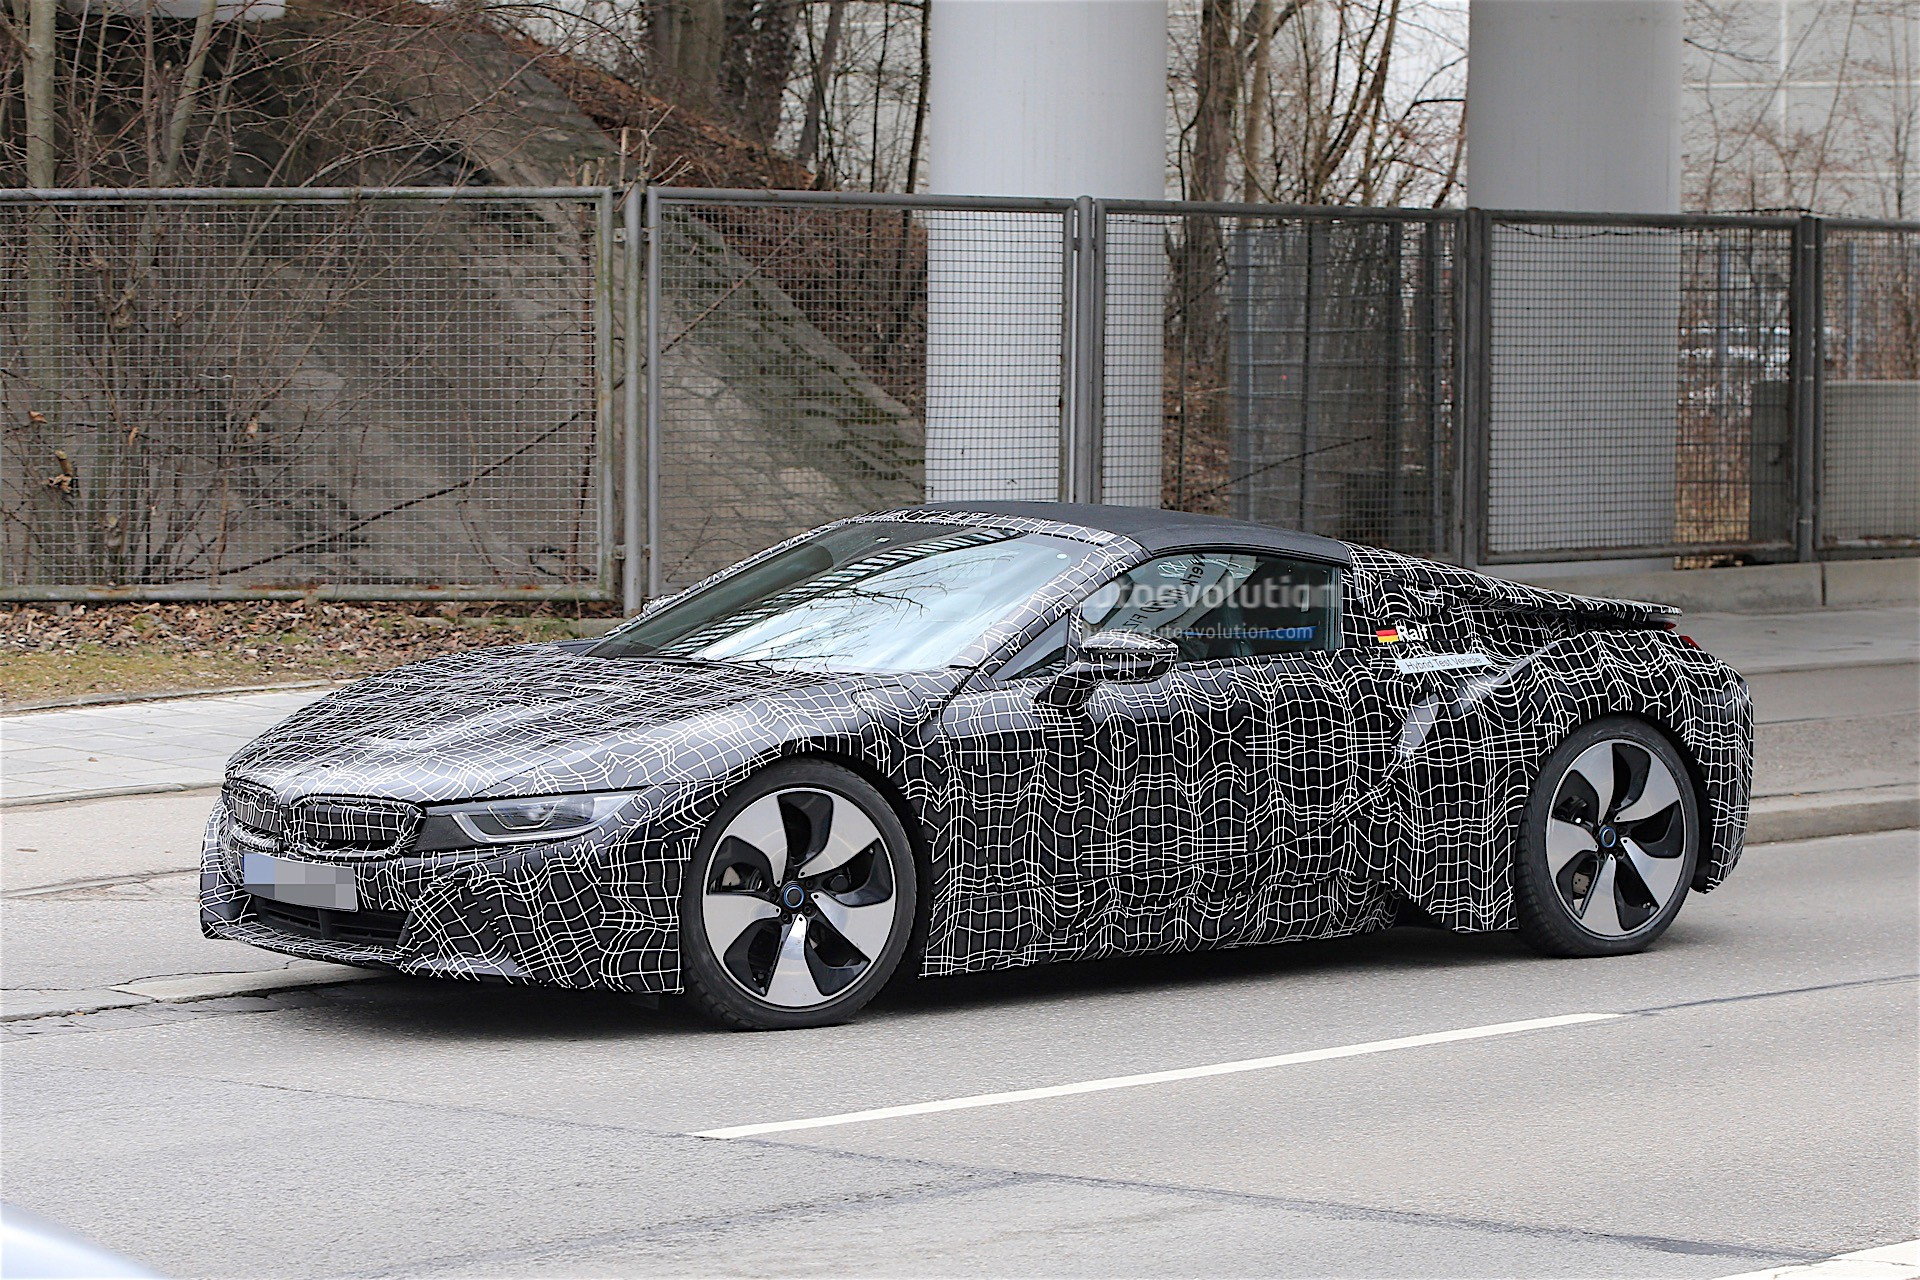 2018 bmw i8 spyder prototype spied everything looks ready. Black Bedroom Furniture Sets. Home Design Ideas